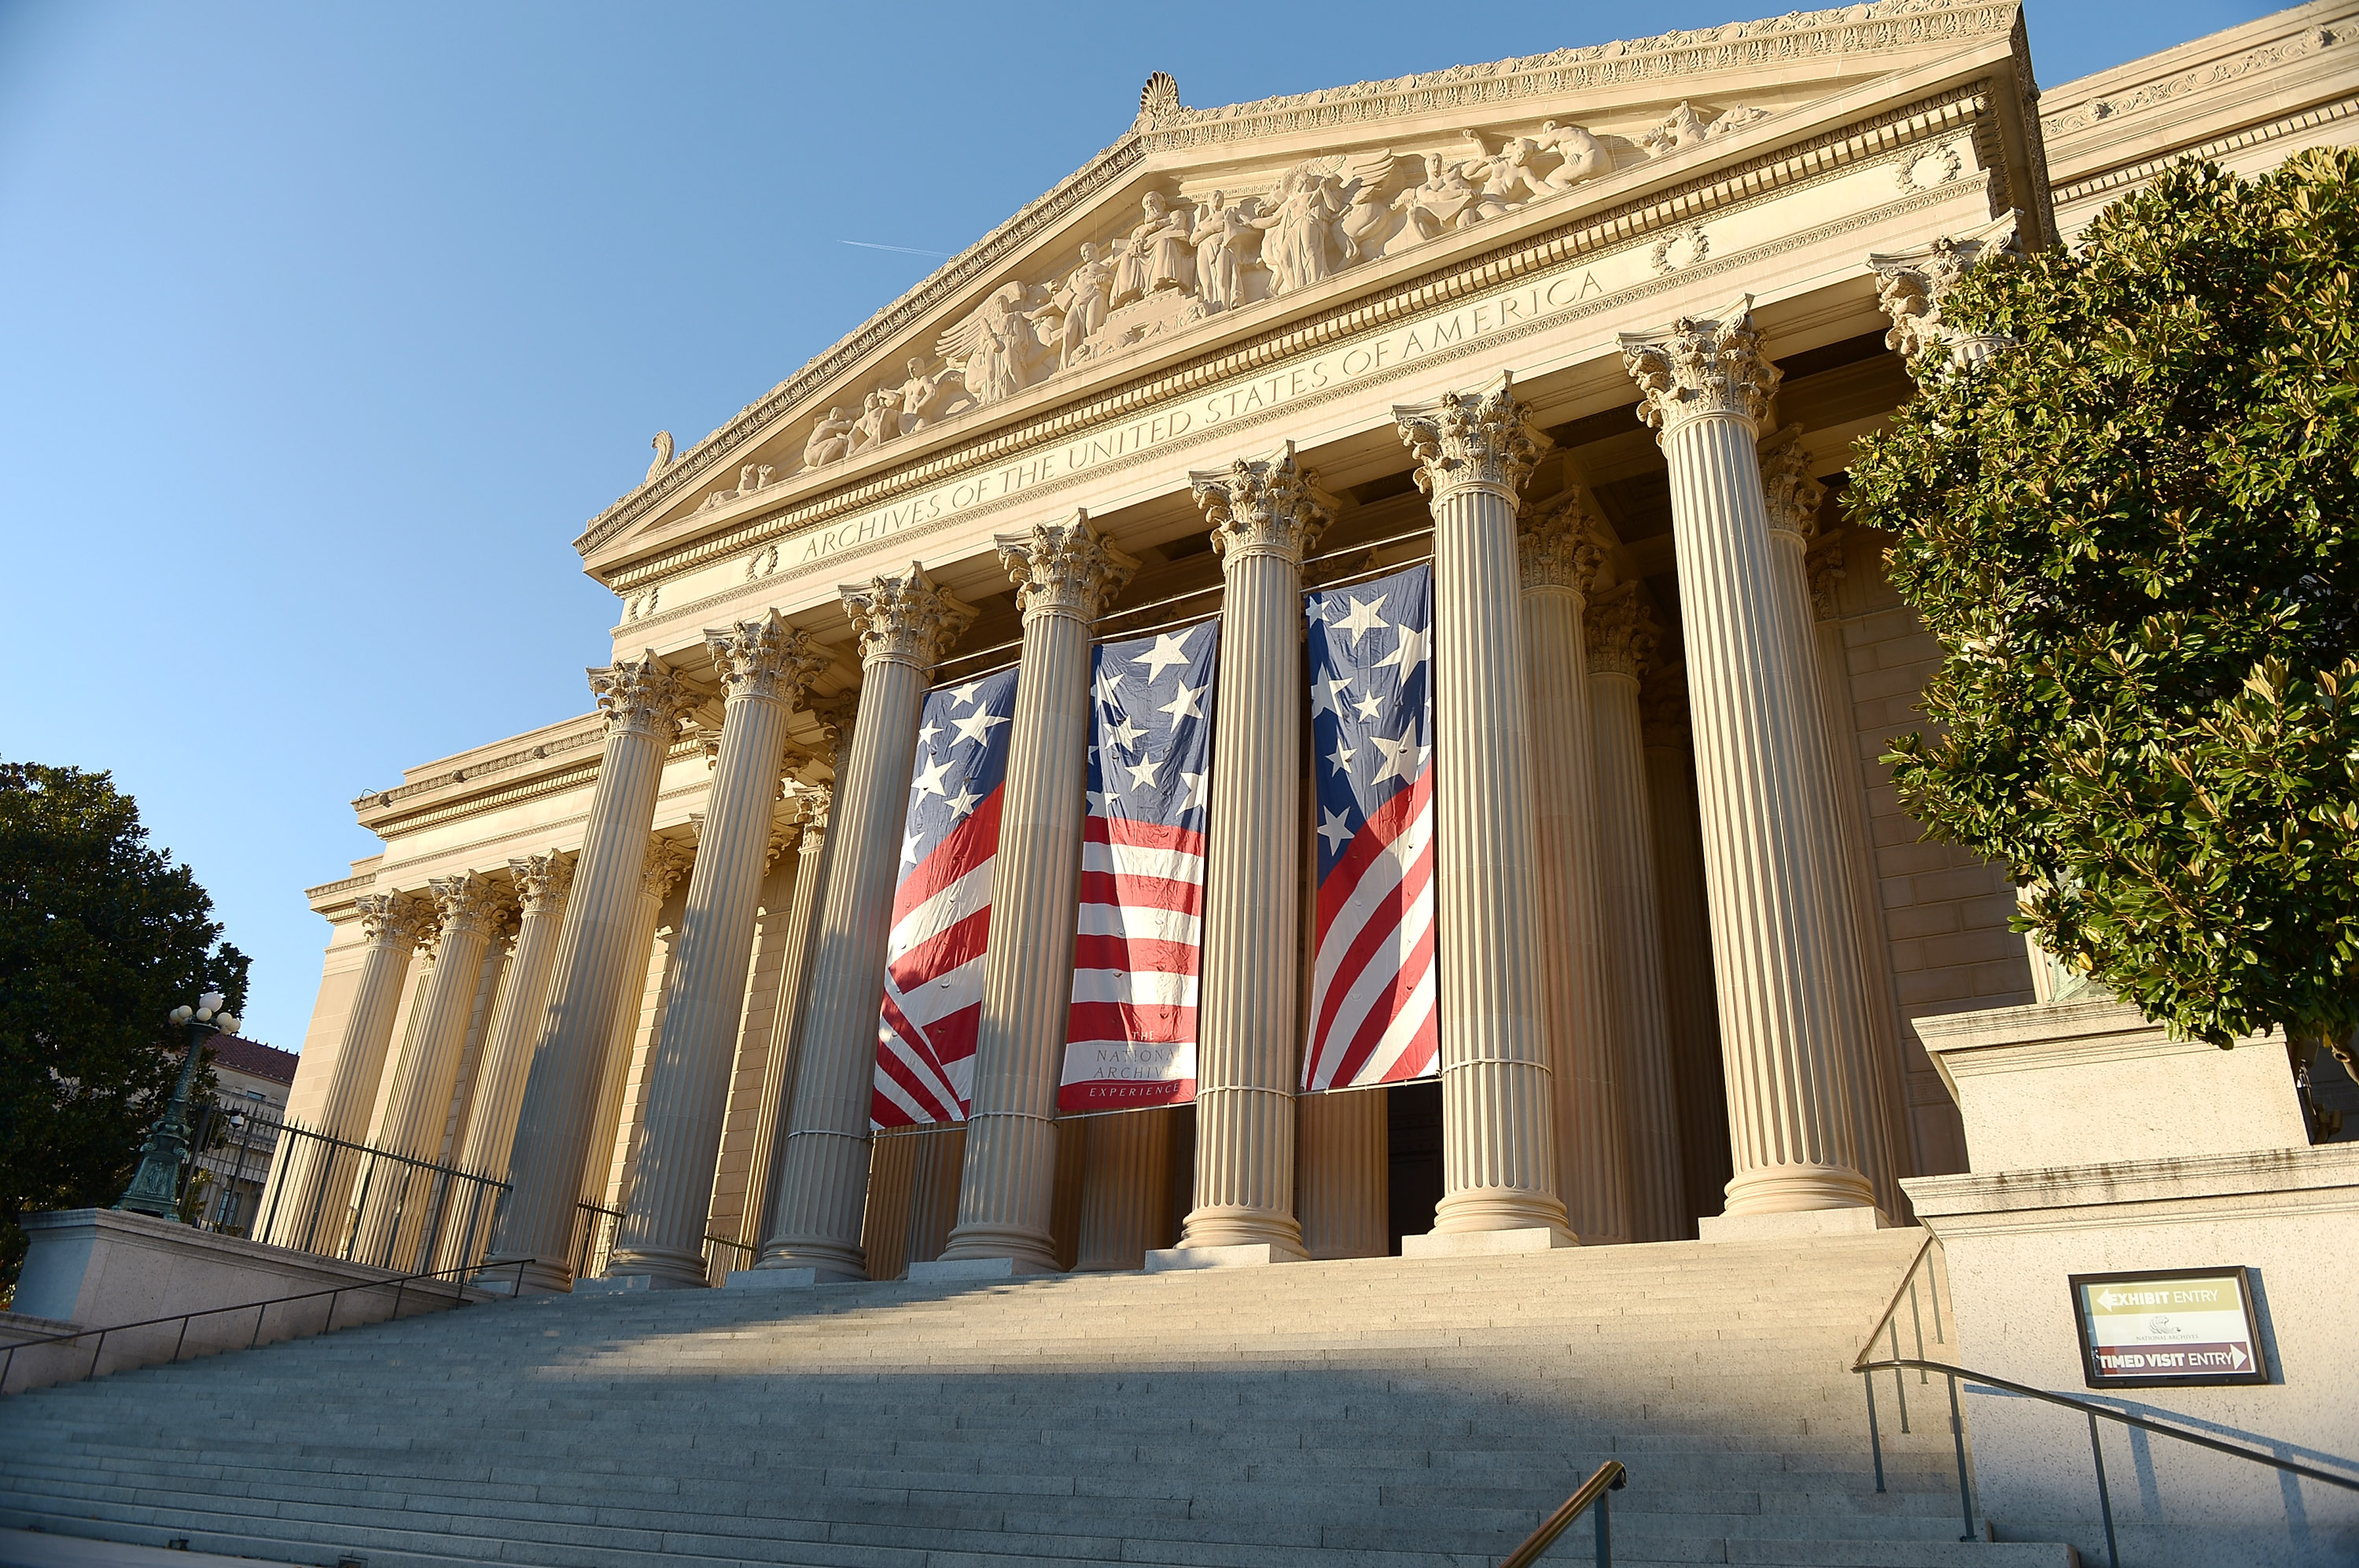 Blue Star Museums program offers active-duty military families free entry until Labor Day